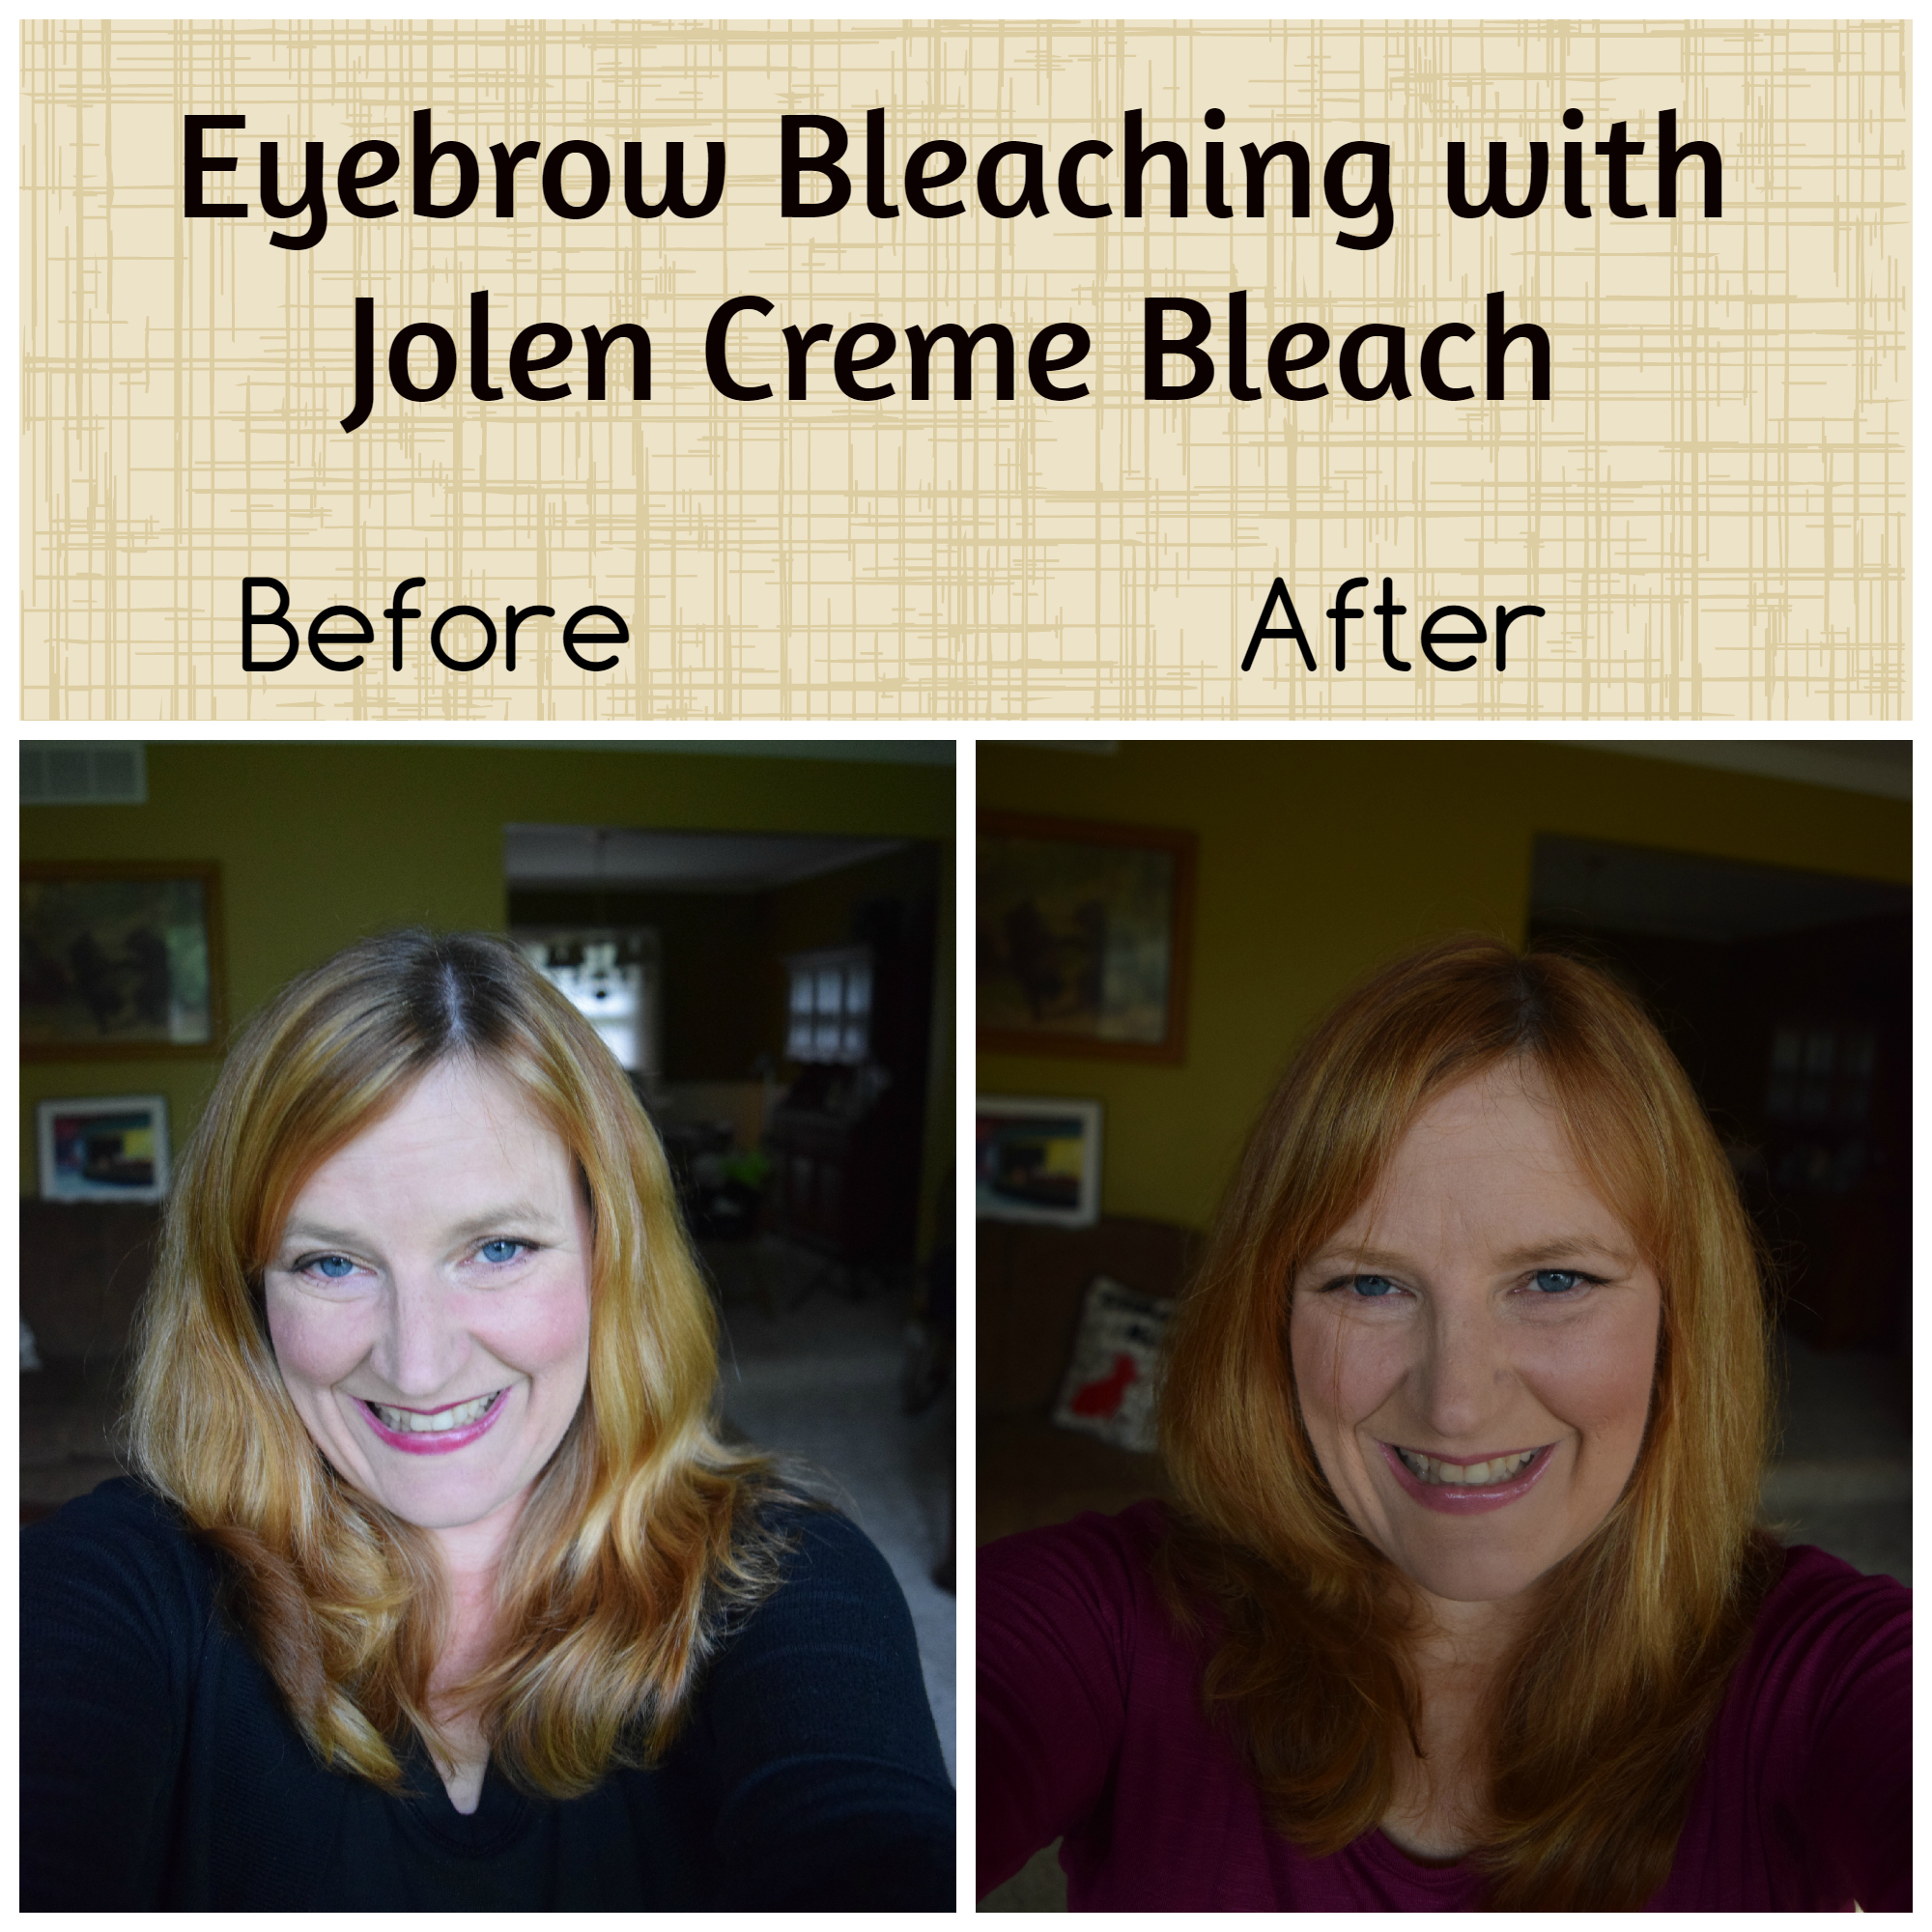 Eyebrow bleaching before and after photos